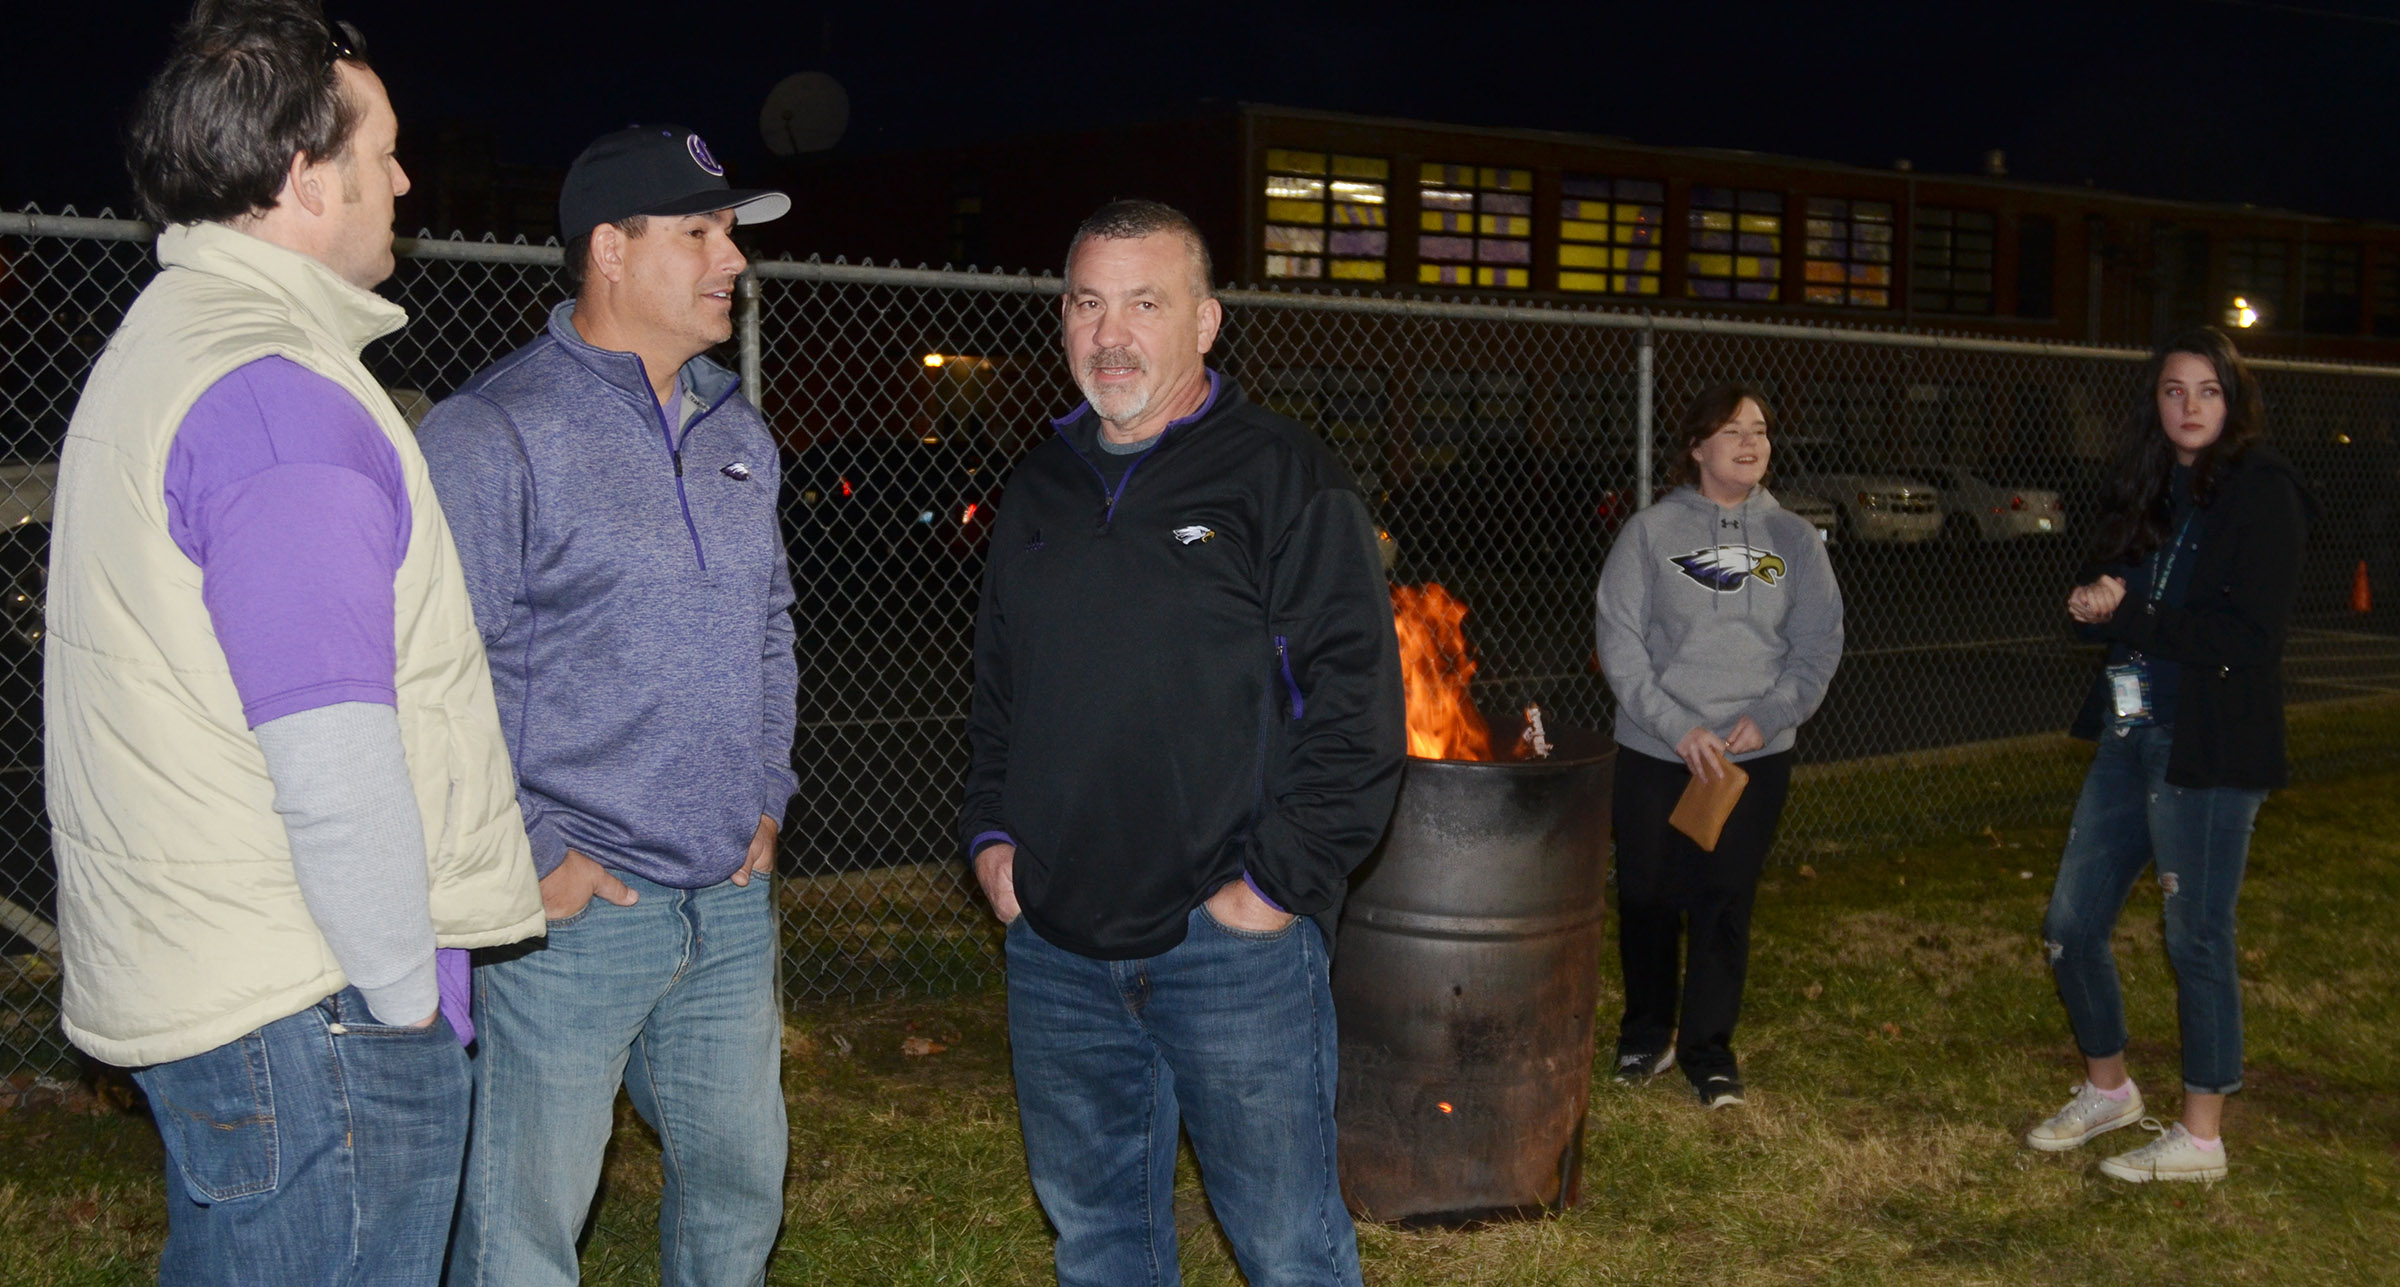 CHS hosted a tailgate before the game for students, staff members and fans. From left are Chief Academic Officer Kent Settle, Superintendent Kirby Smith and Transportation Director Tim Tungate.